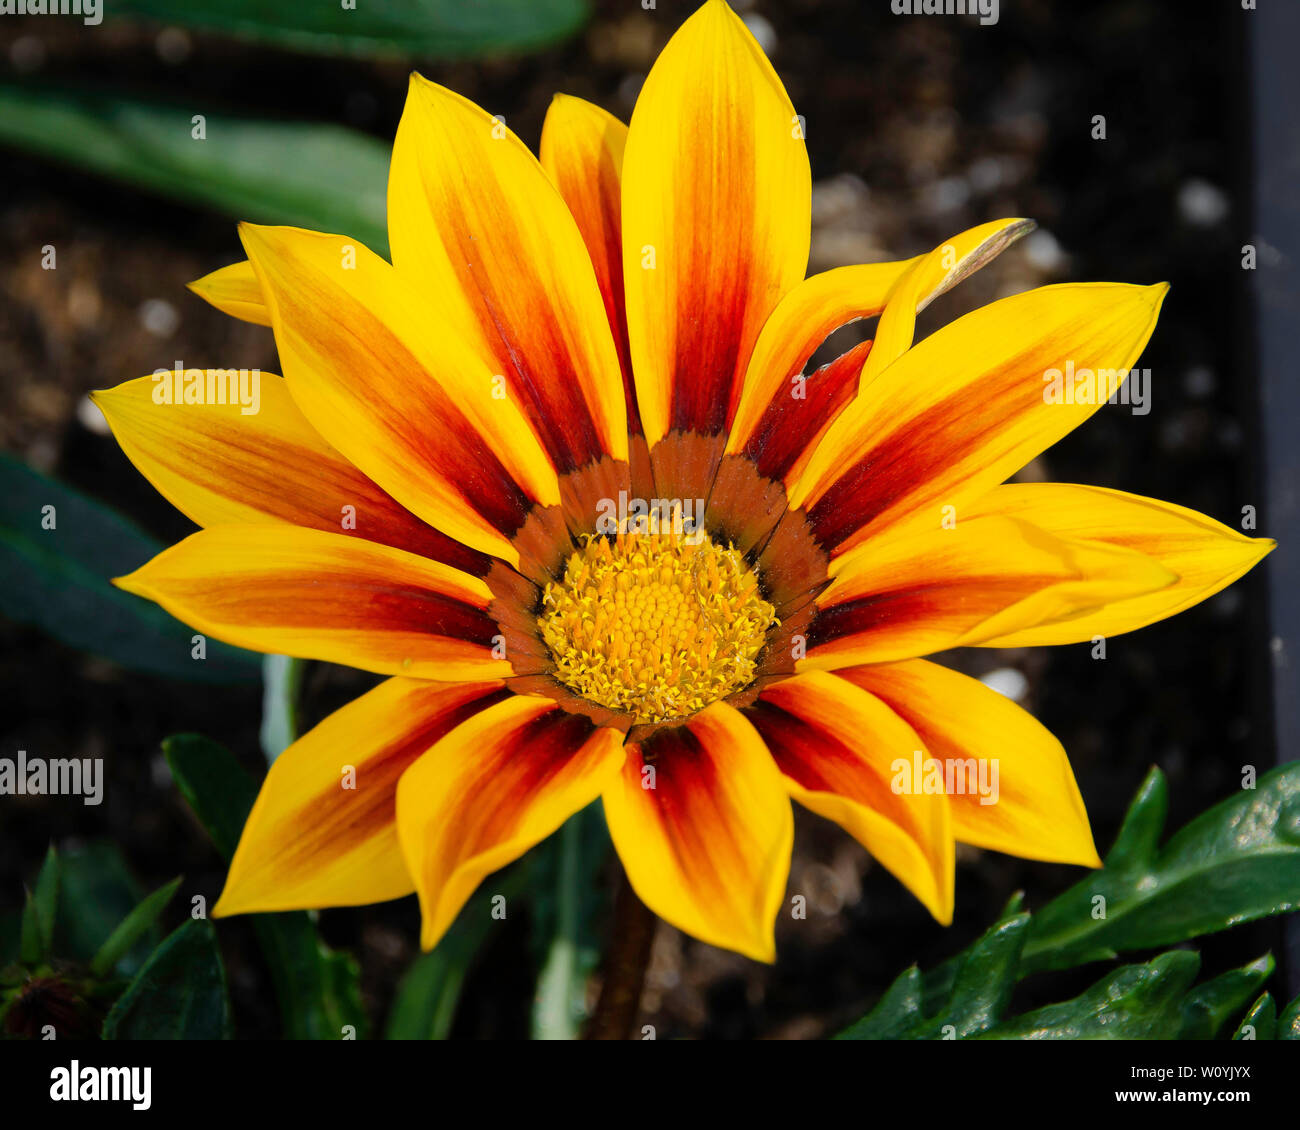 Red and yellow gazania flower Stock Photo